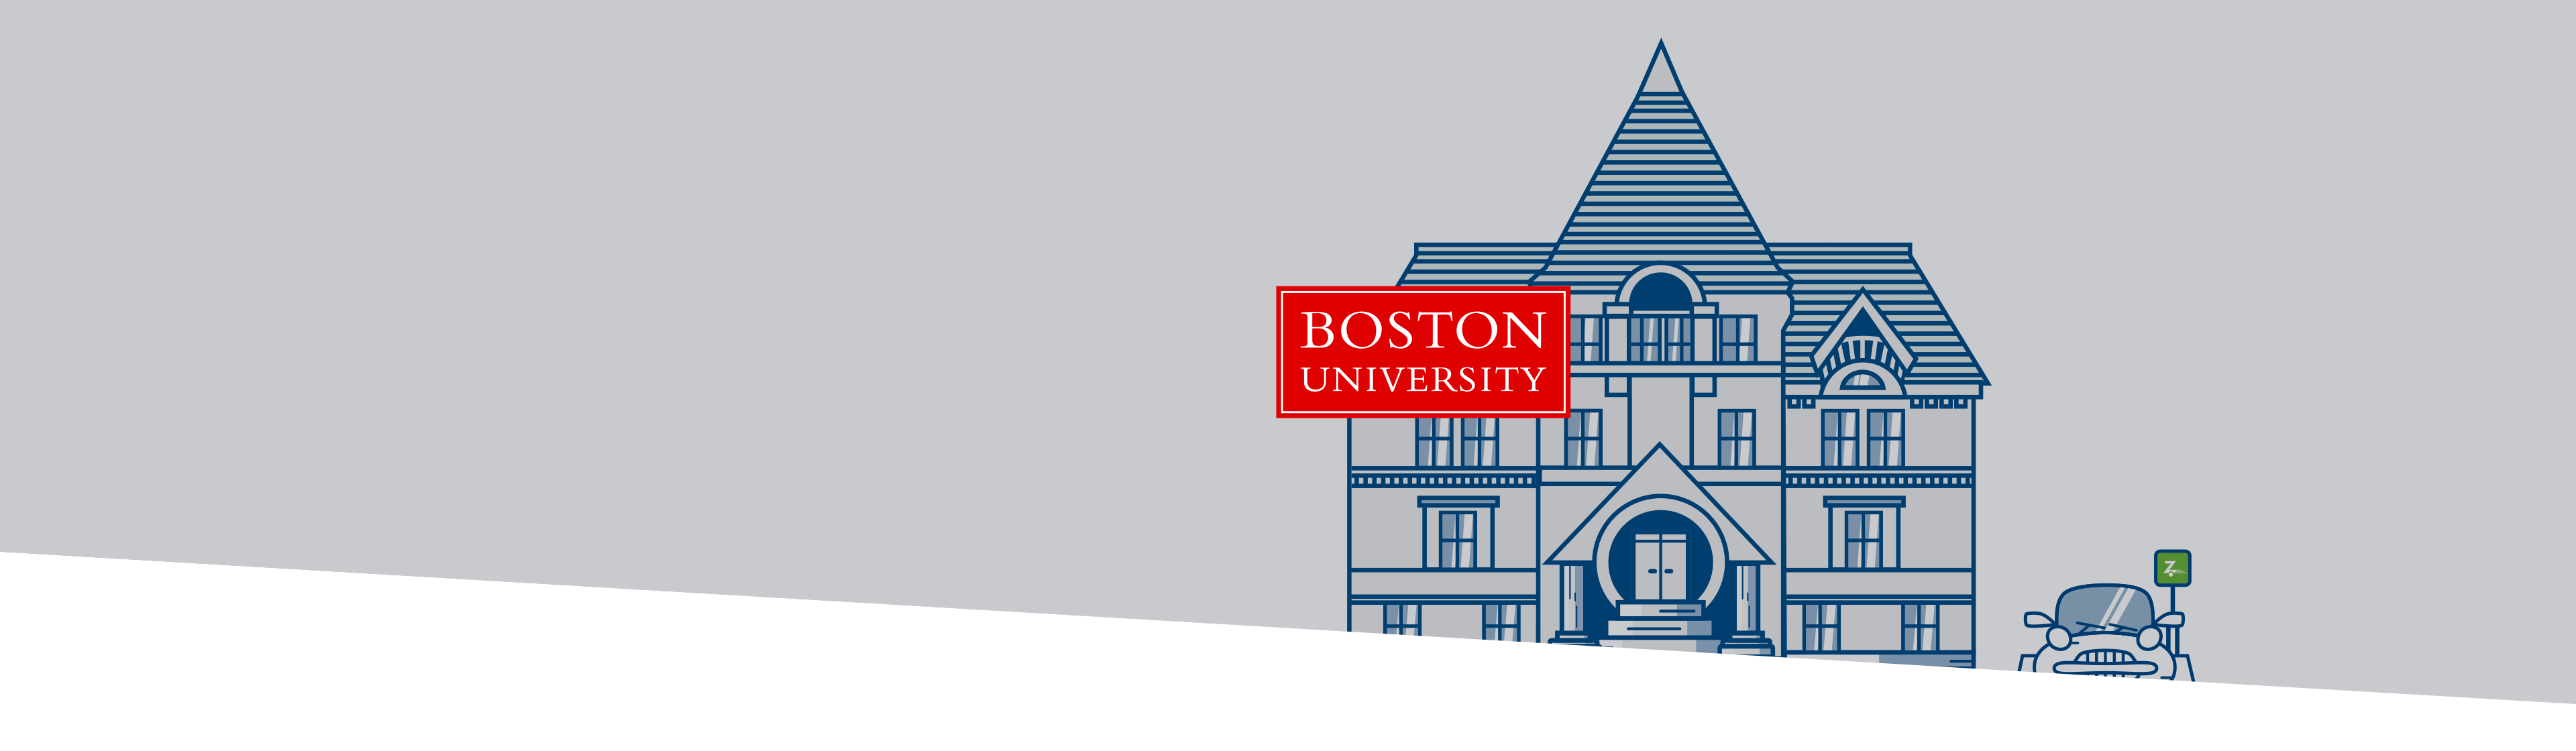 Boston University building and logo